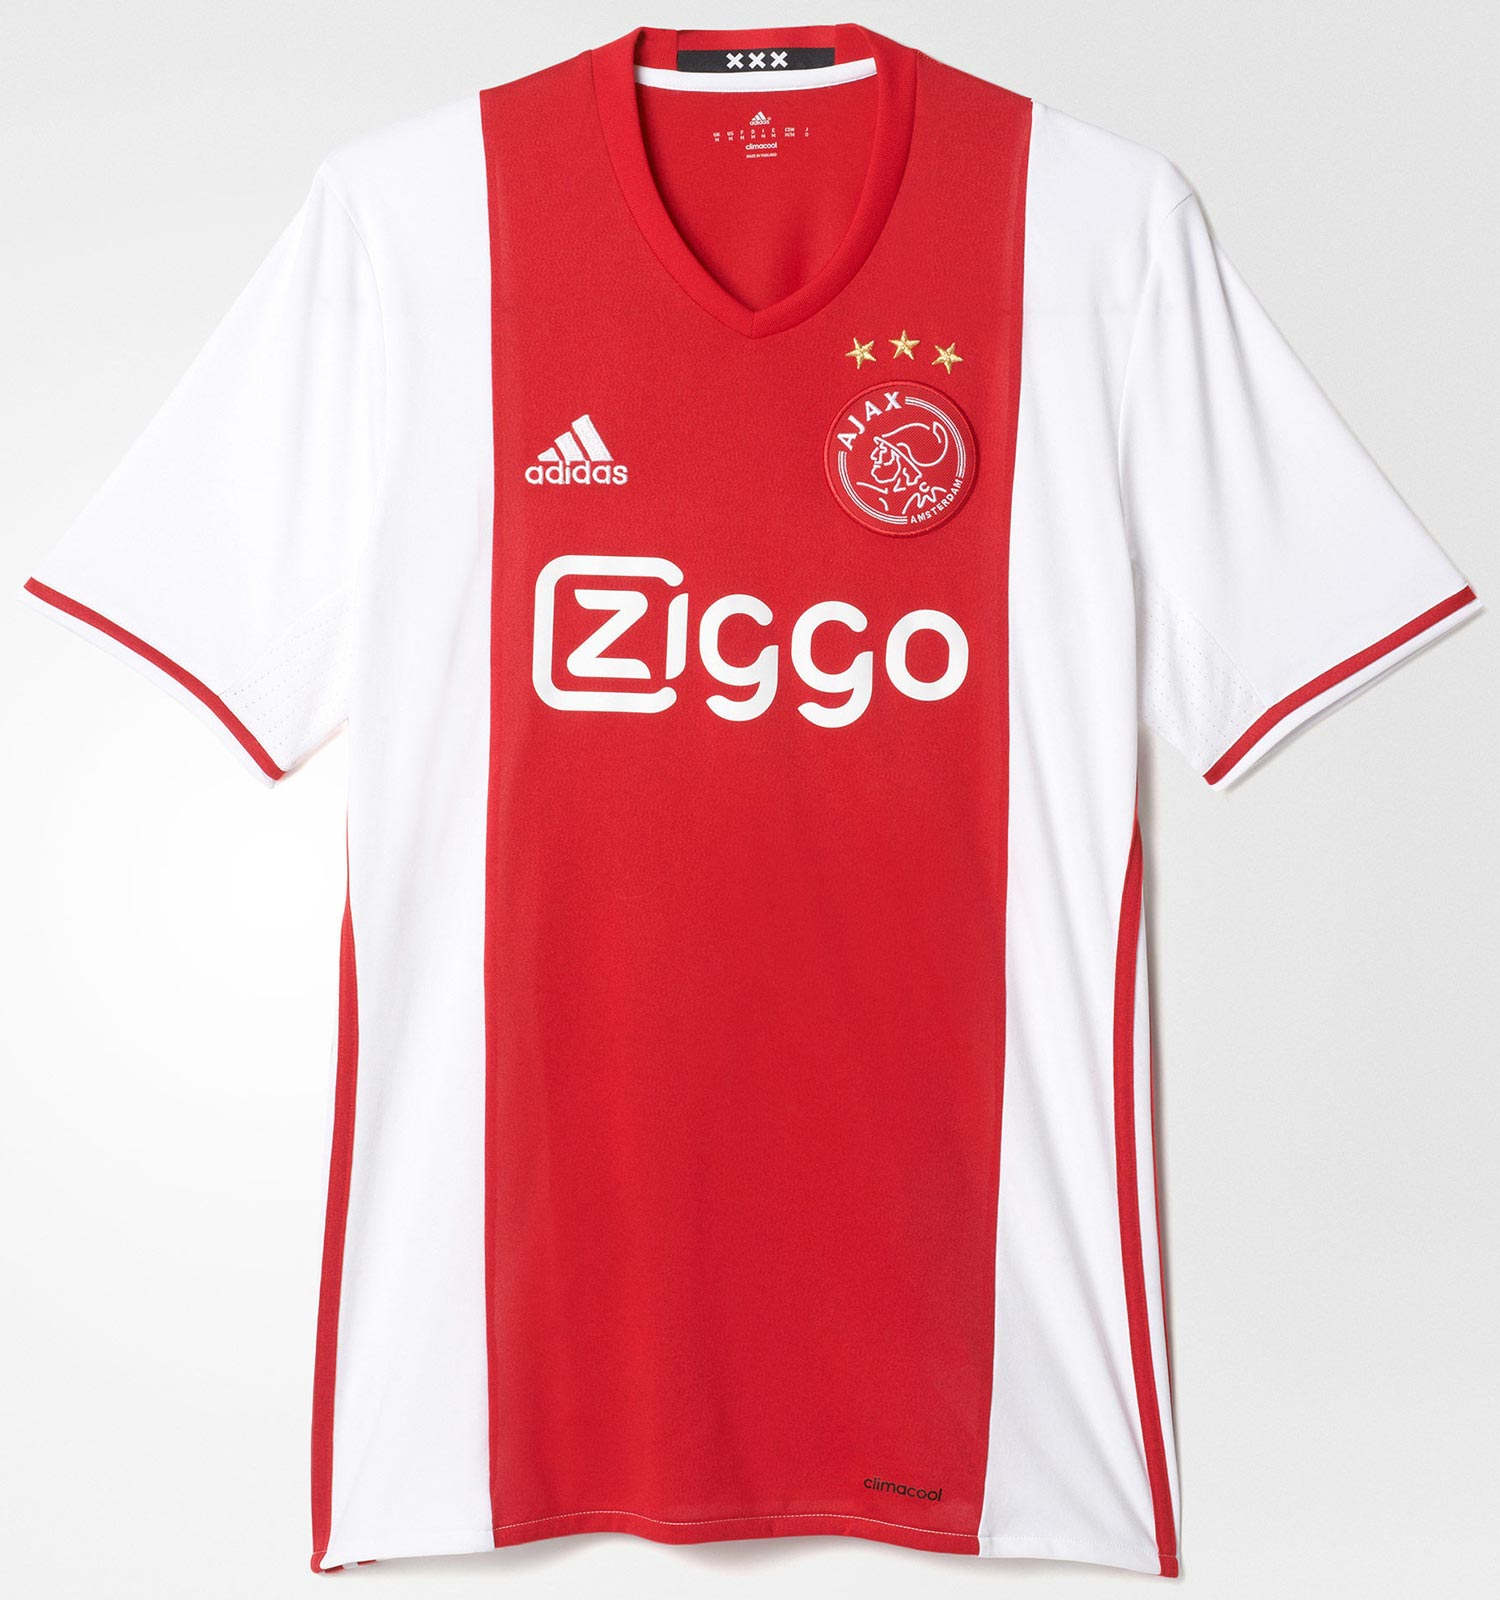 Ajax 16-17 Kits Revealed - Footy Headlines